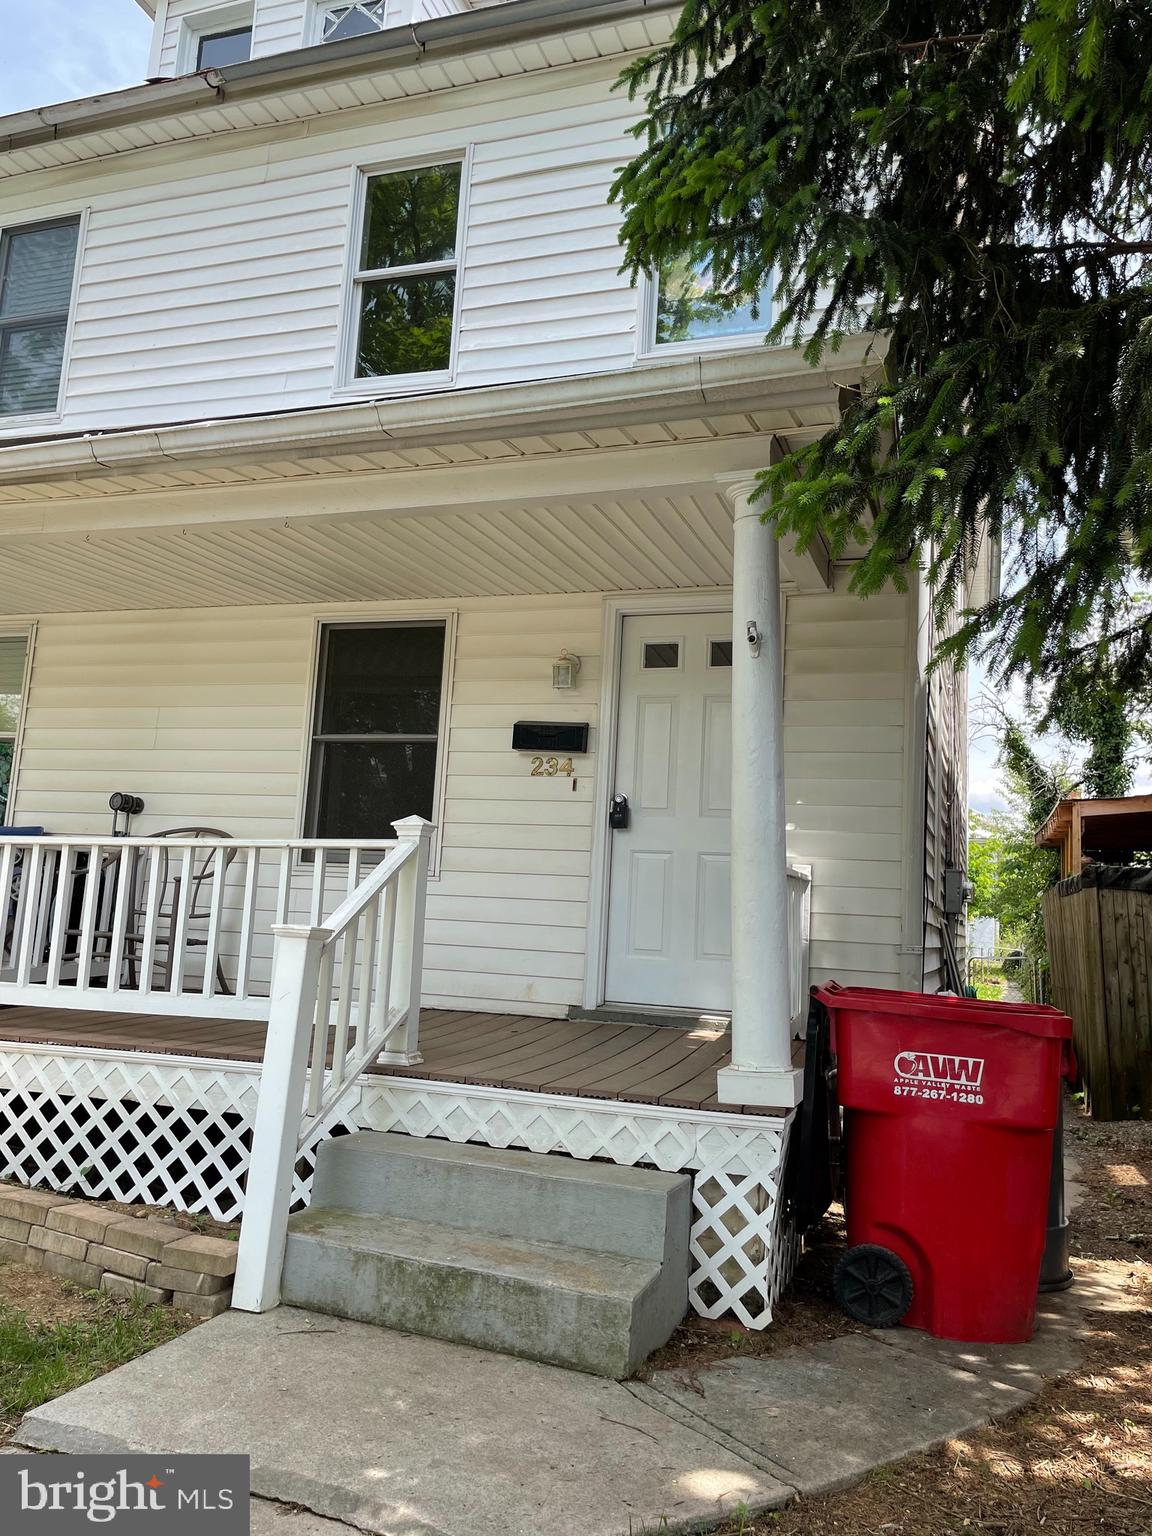 What a nice starter home, 2 Bedrooms and 1.5 Bathrooms, with a laundry room in the 1/2 bath. New car